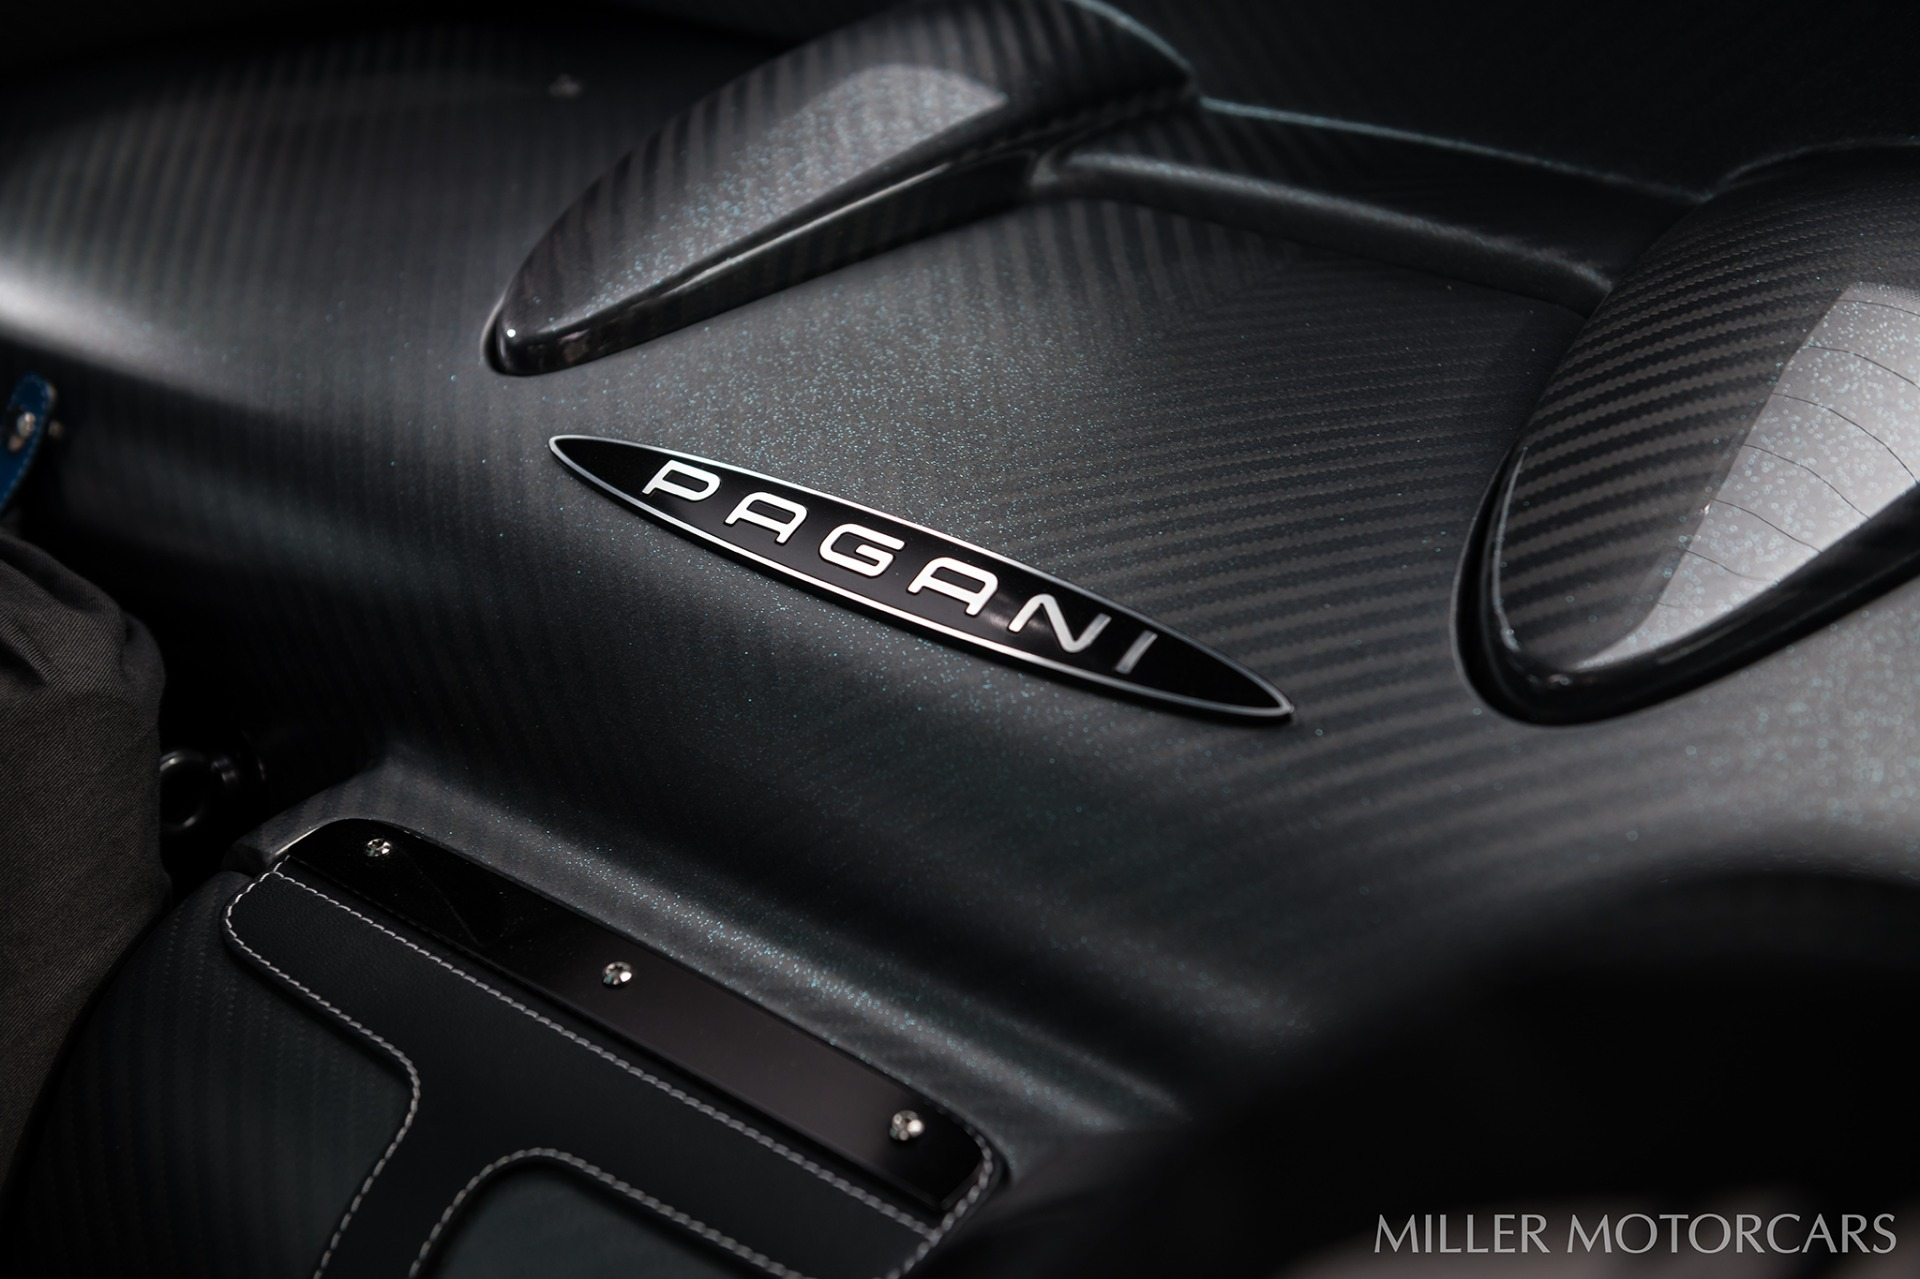 Used 2017 Pagani Huayra BC Macchina Volante For Sale In Greenwich, CT 3051_p39